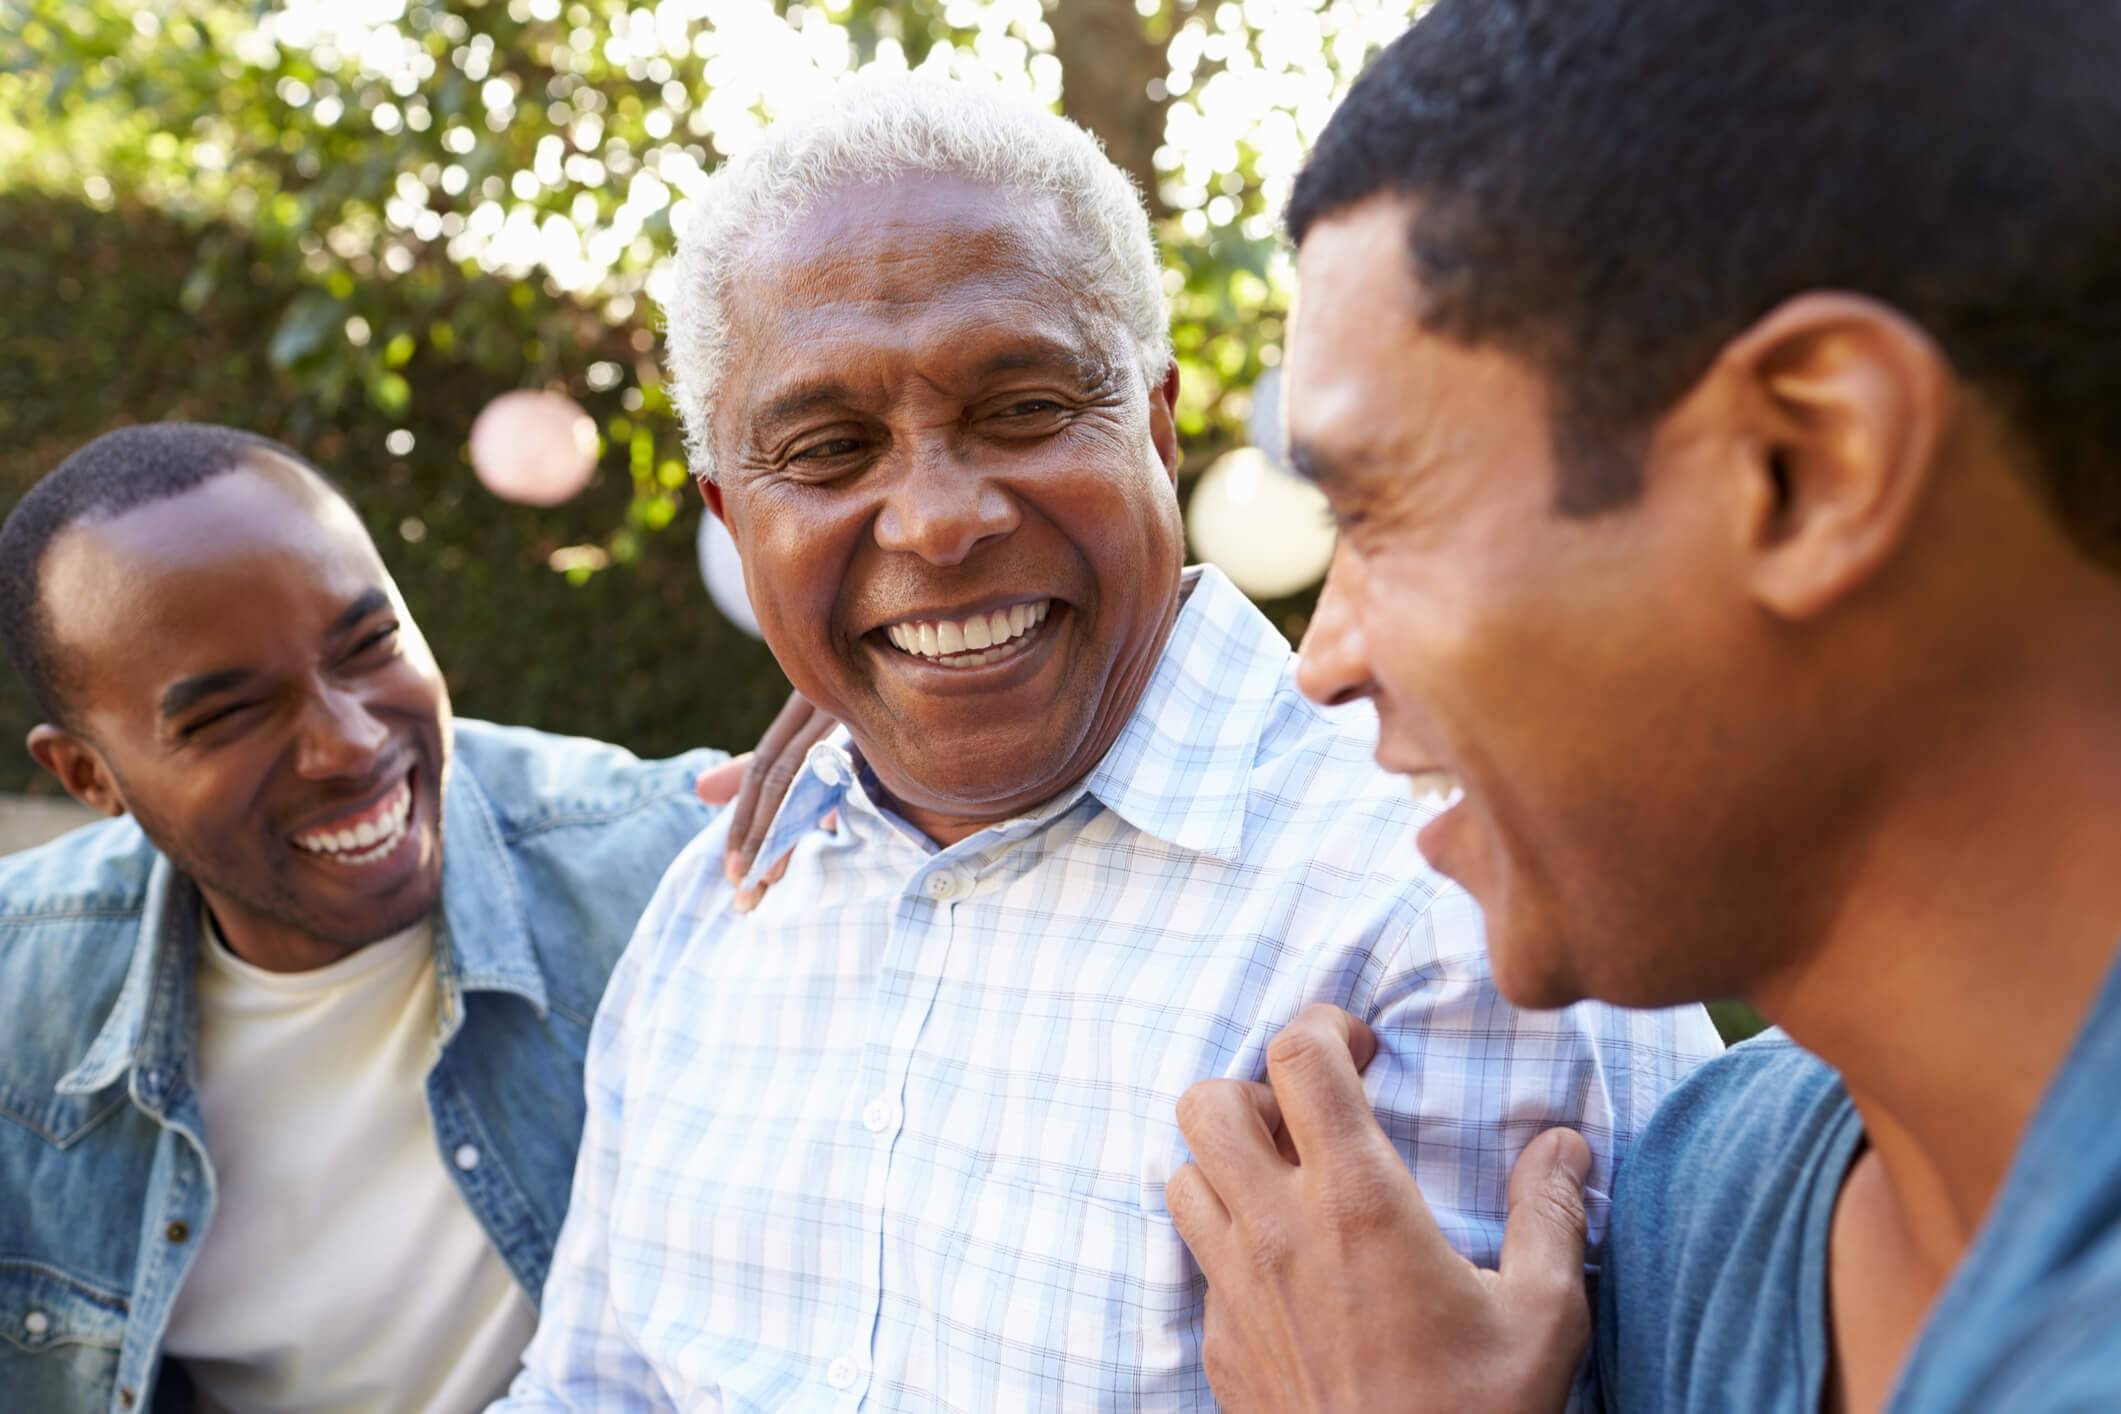 Top 5 Speech Therapy Exercises for Stroke Patients